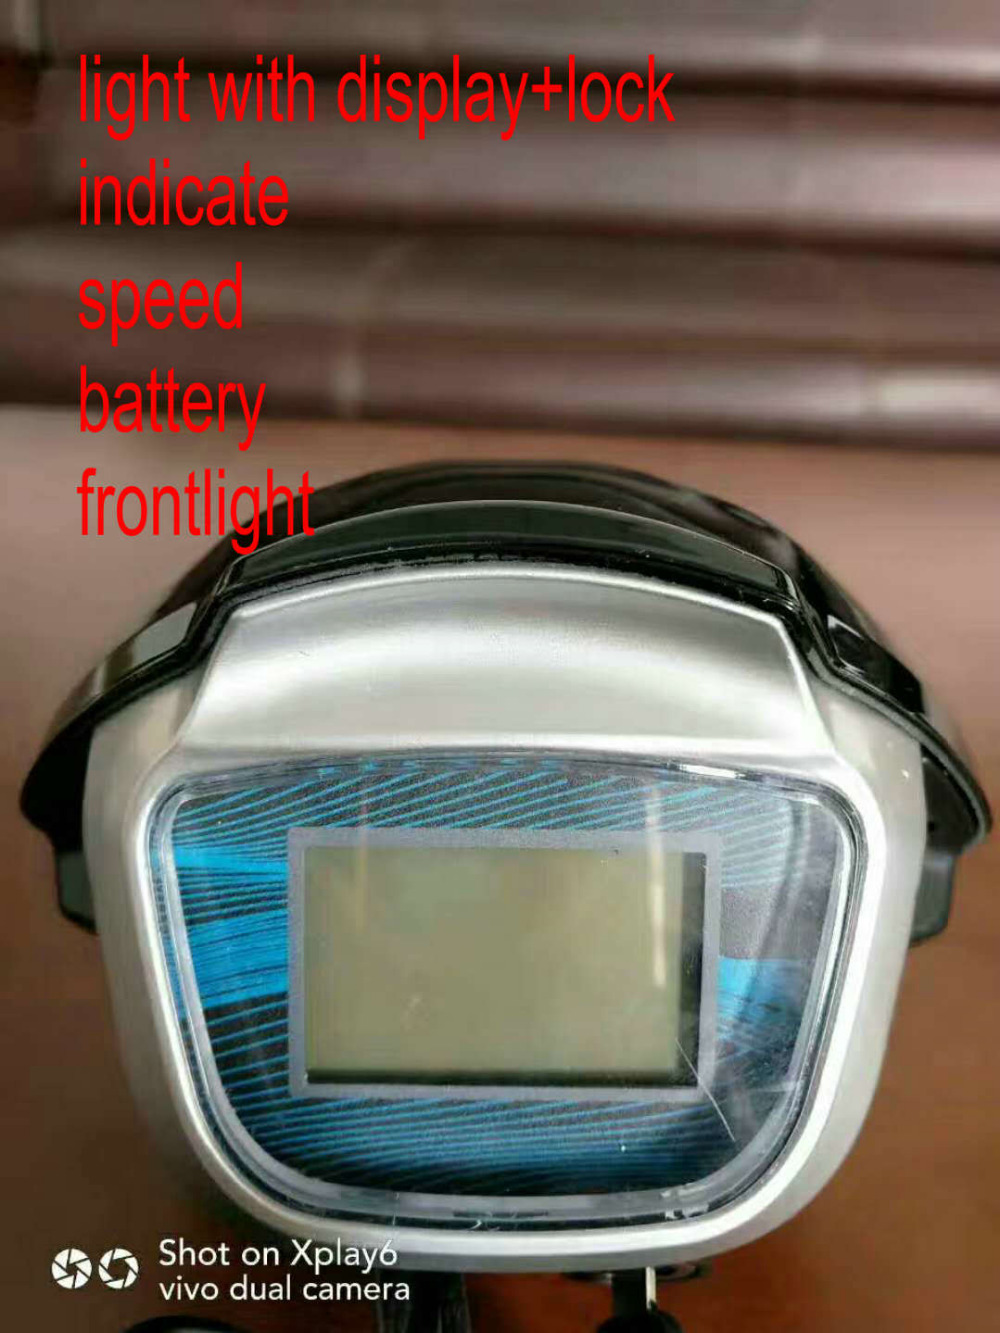 harley scooter light 60v blue tooth_20181204144614